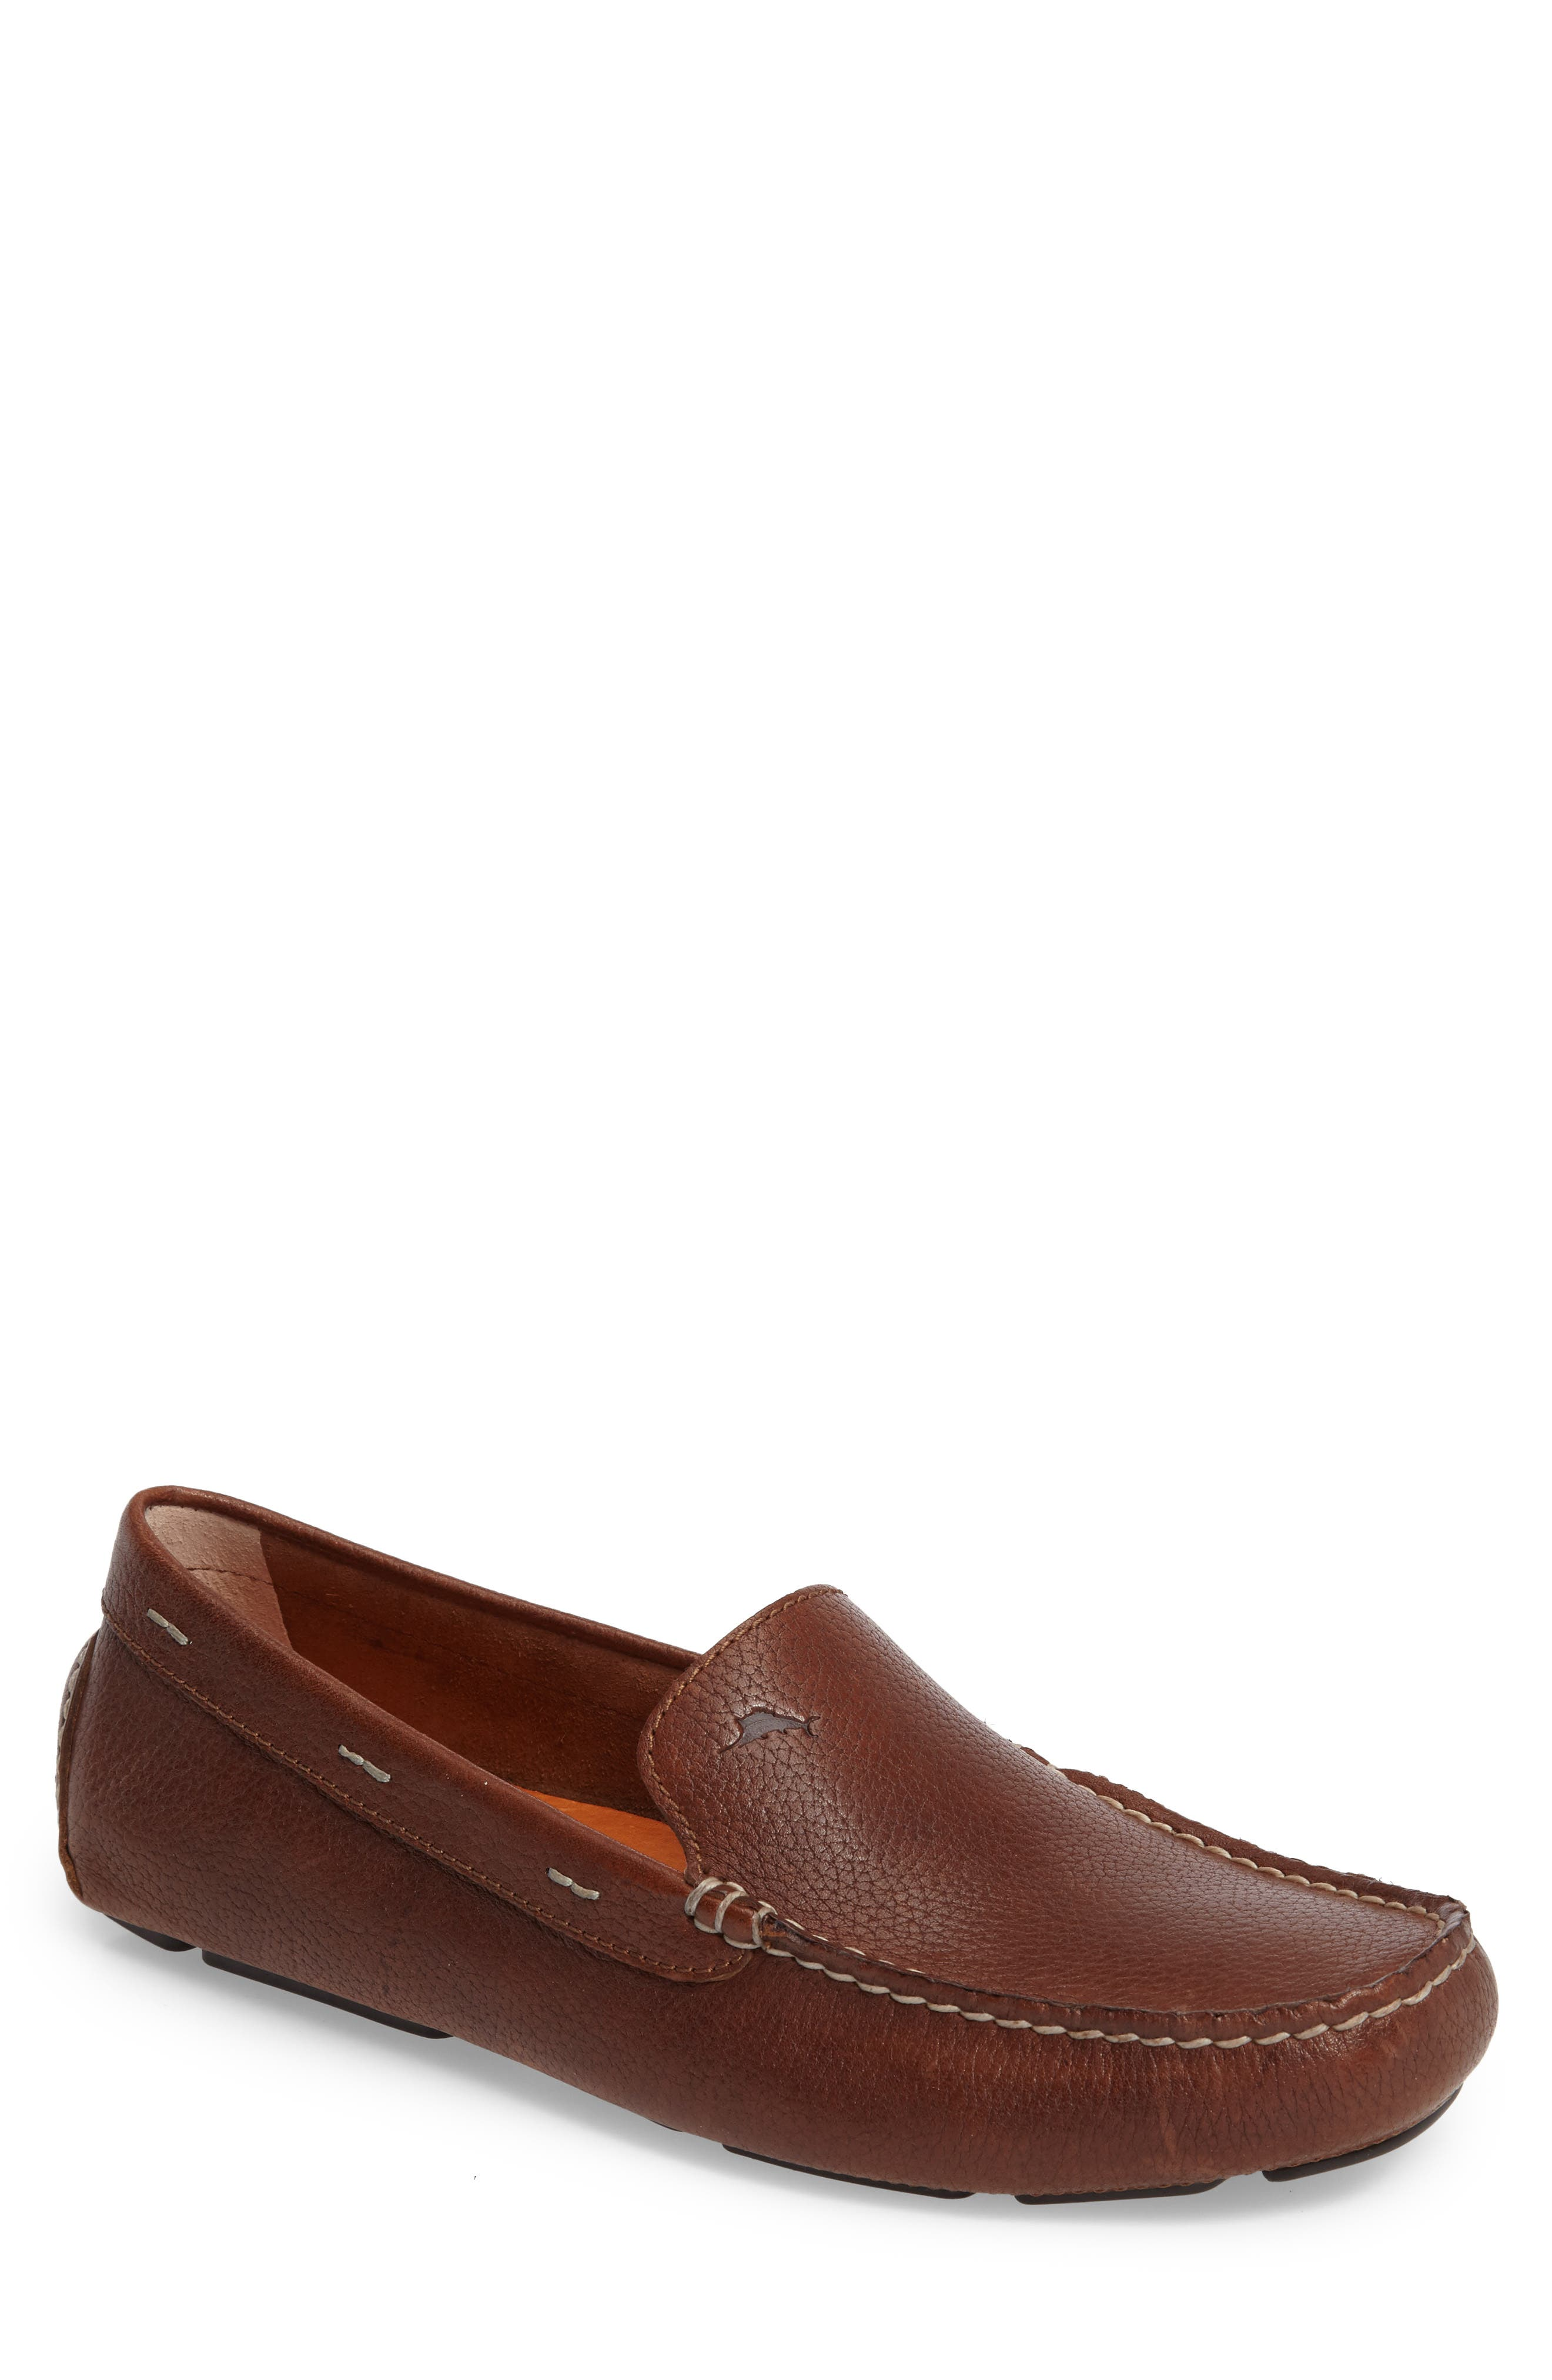 Main Image - Tommy Bahama Pagota Driving Loafer (Men)